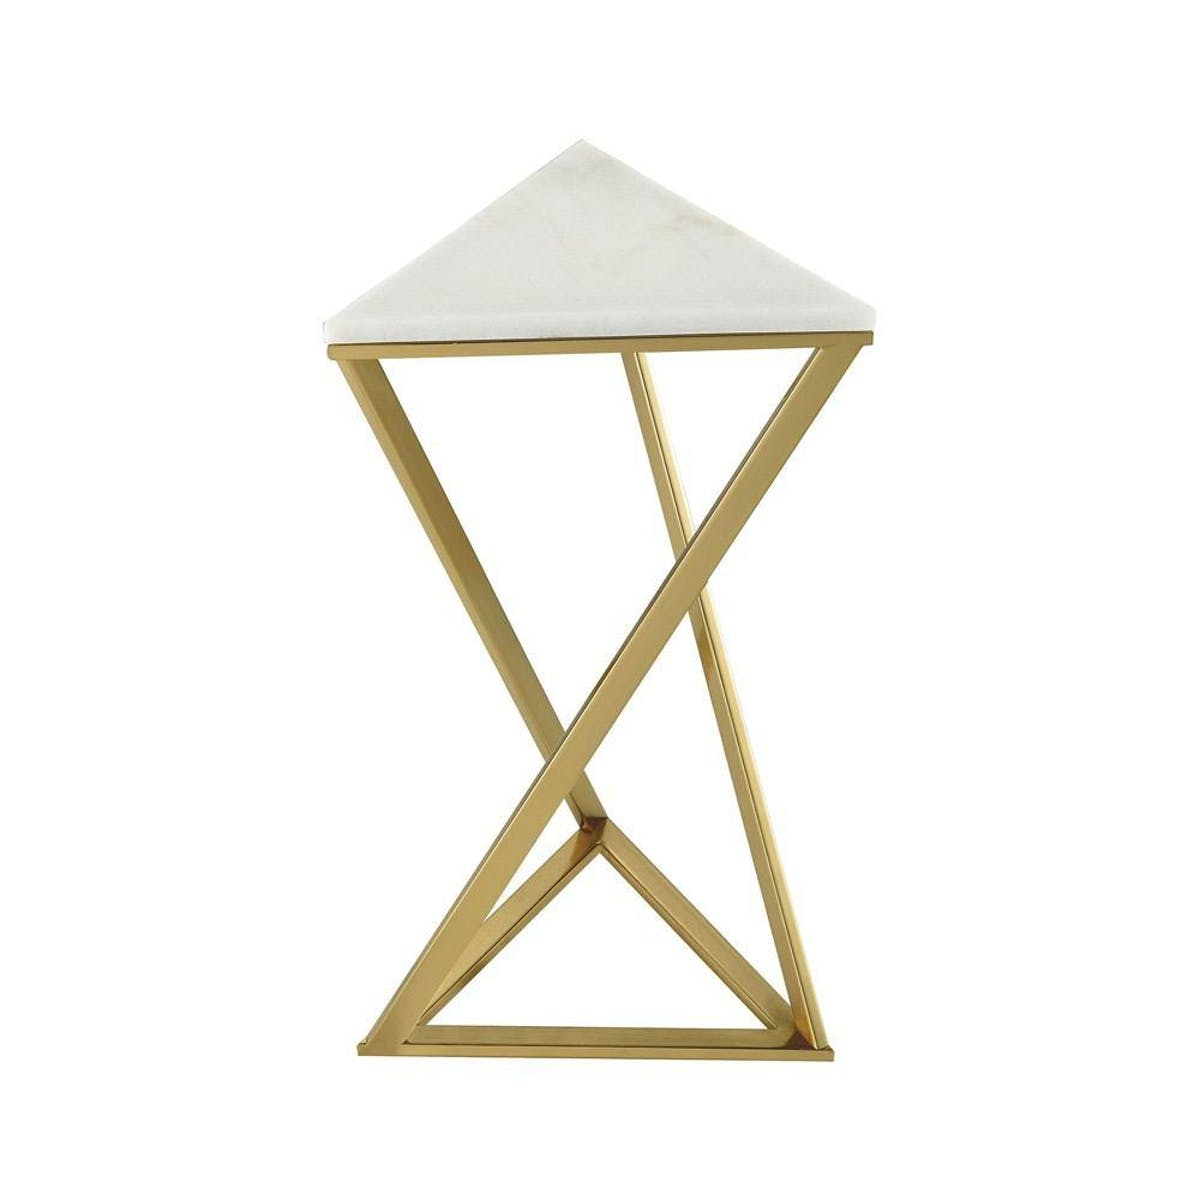 sterling industries garde metal accent table marble top modish slim glass side acrylic furniture foyer inch square tablecloth small outdoor patio covers round sheesham dining